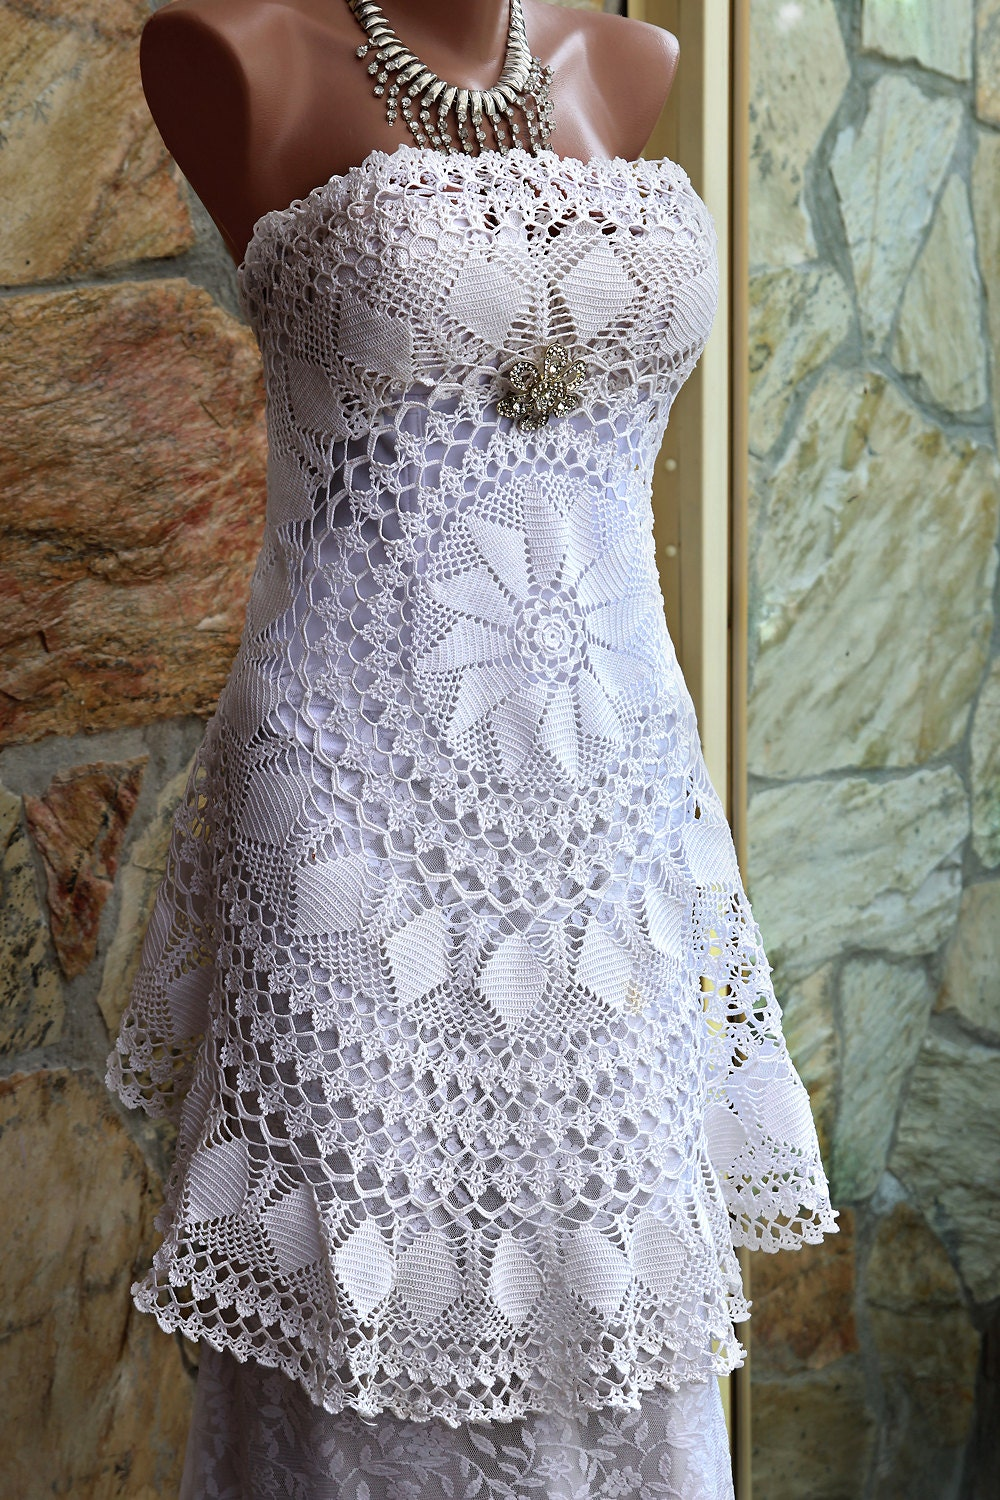 Crochet lace wedding dress ooak alternative wedding dress for Crochet wedding dress patterns